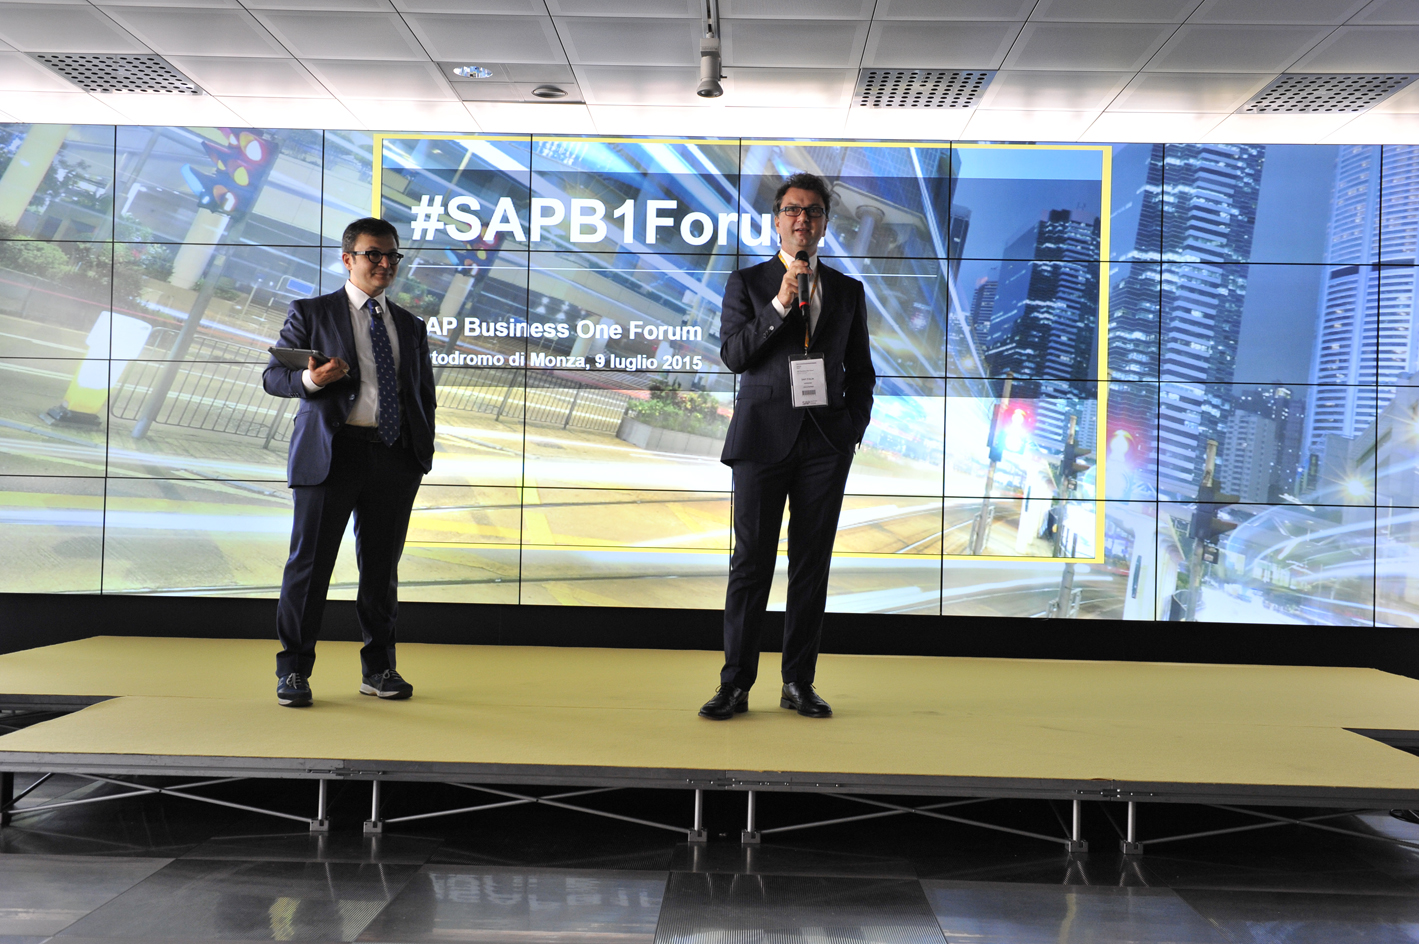 Sap Business One Forum